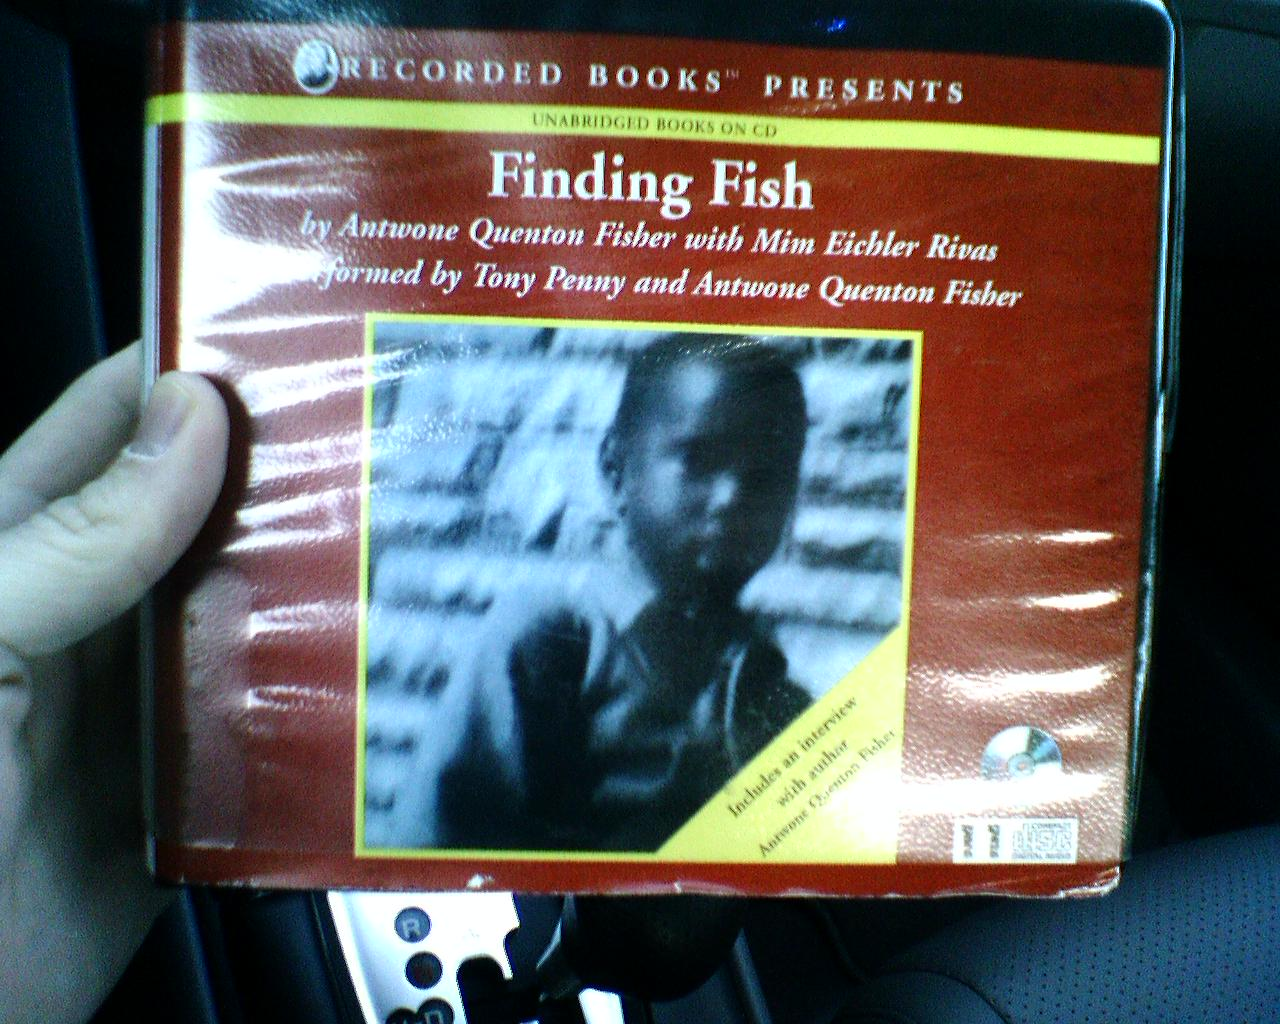 finding fish a memoir by antwone fisher Get this from a library finding fish : a memoir [antwone quenton fisher mim eichler rivas] -- antwone fisher tells the story of his life, from his birth to a prison inmate to his success as a screenwriter in hollywood, discussing his childhood and teen years in foster homes, his stint in the.